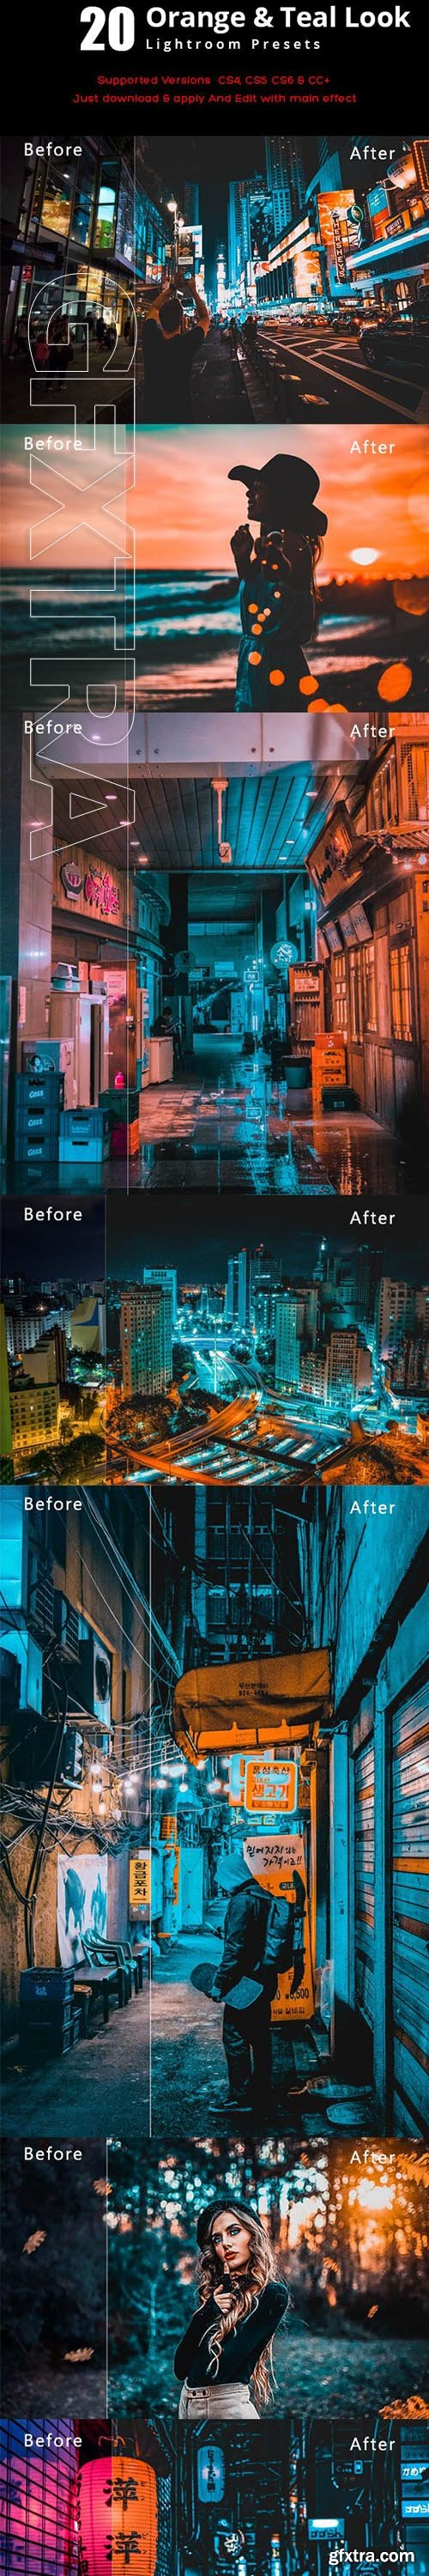 GraphicRiver - 20 Orange & Teal Look Lightroom Preset 23119736